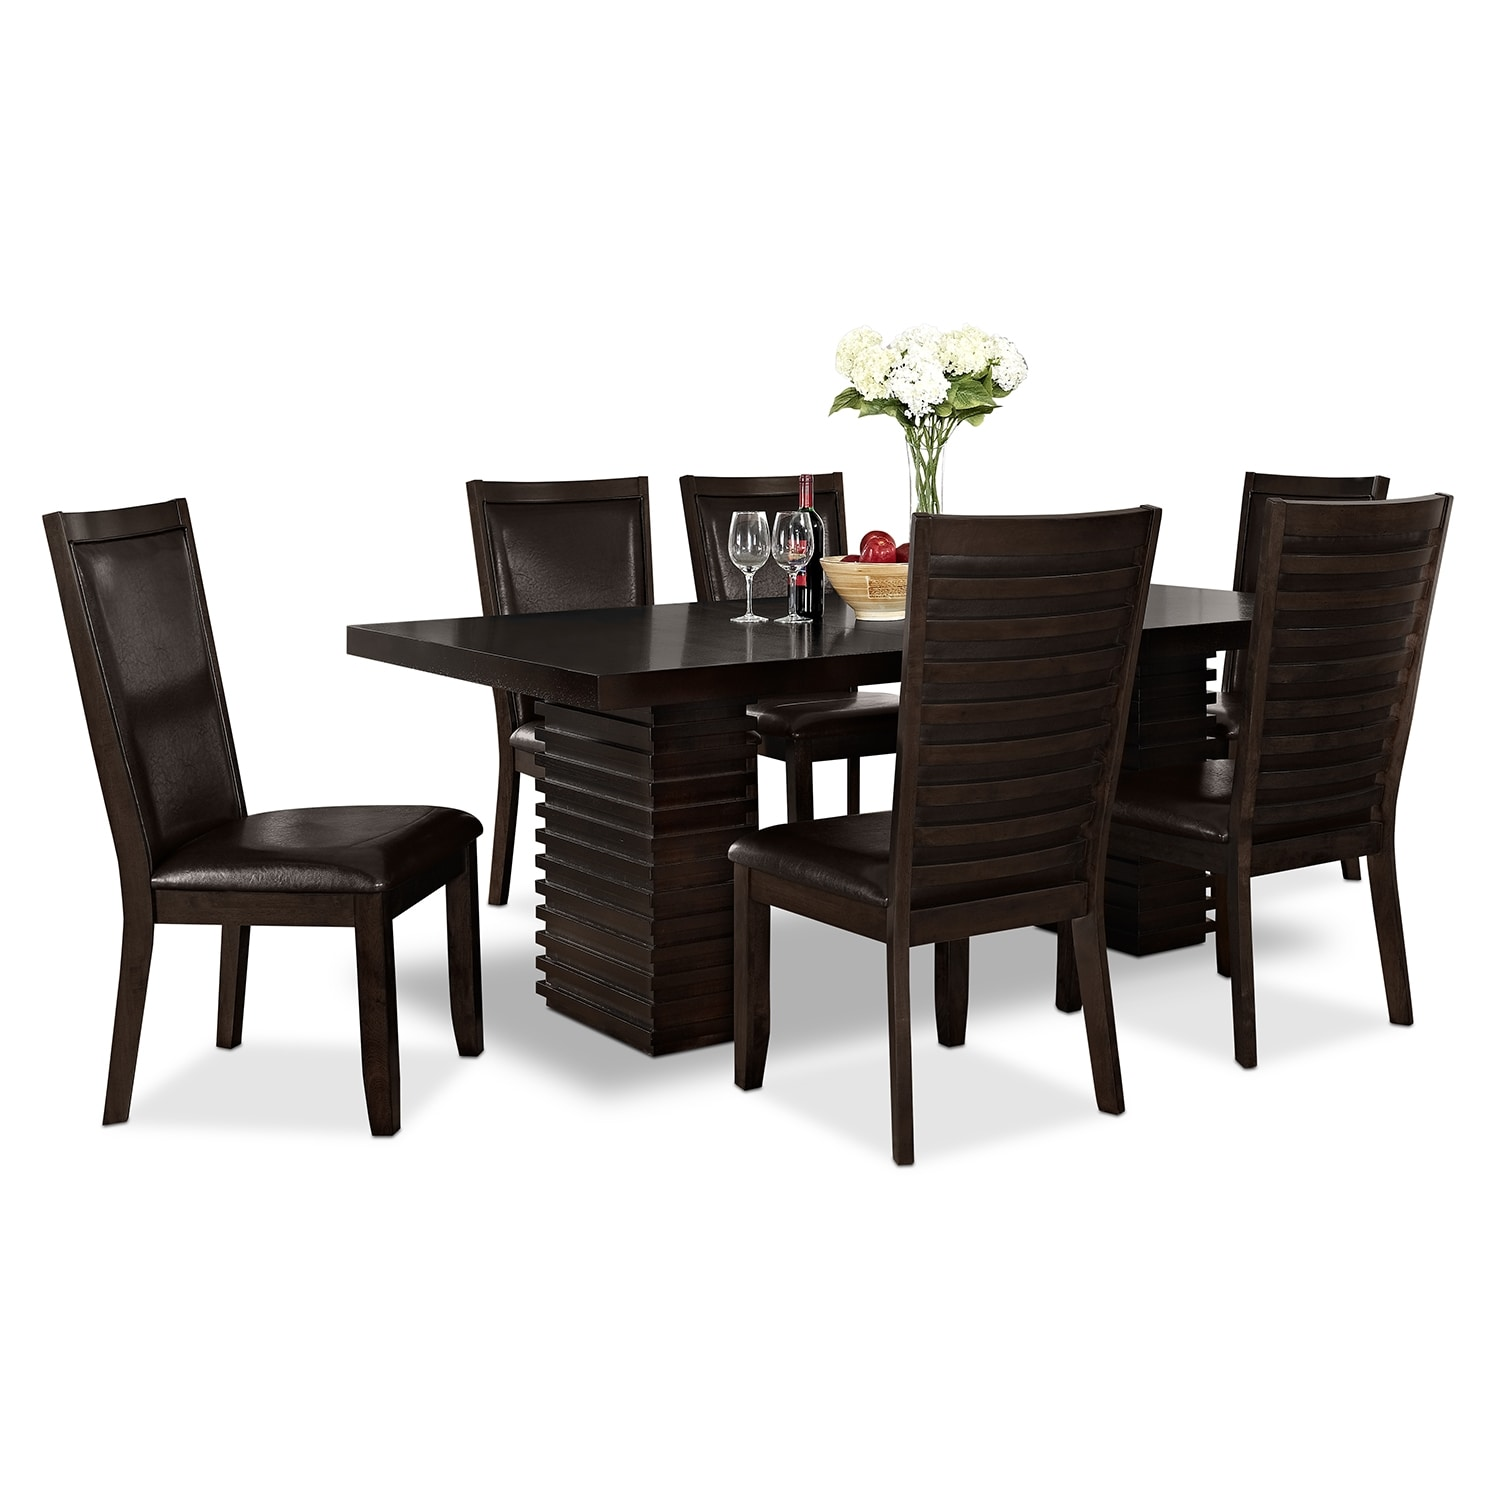 dinettes kitchen table las vegas Paragon Table and 6 Chairs Merlot and Brown